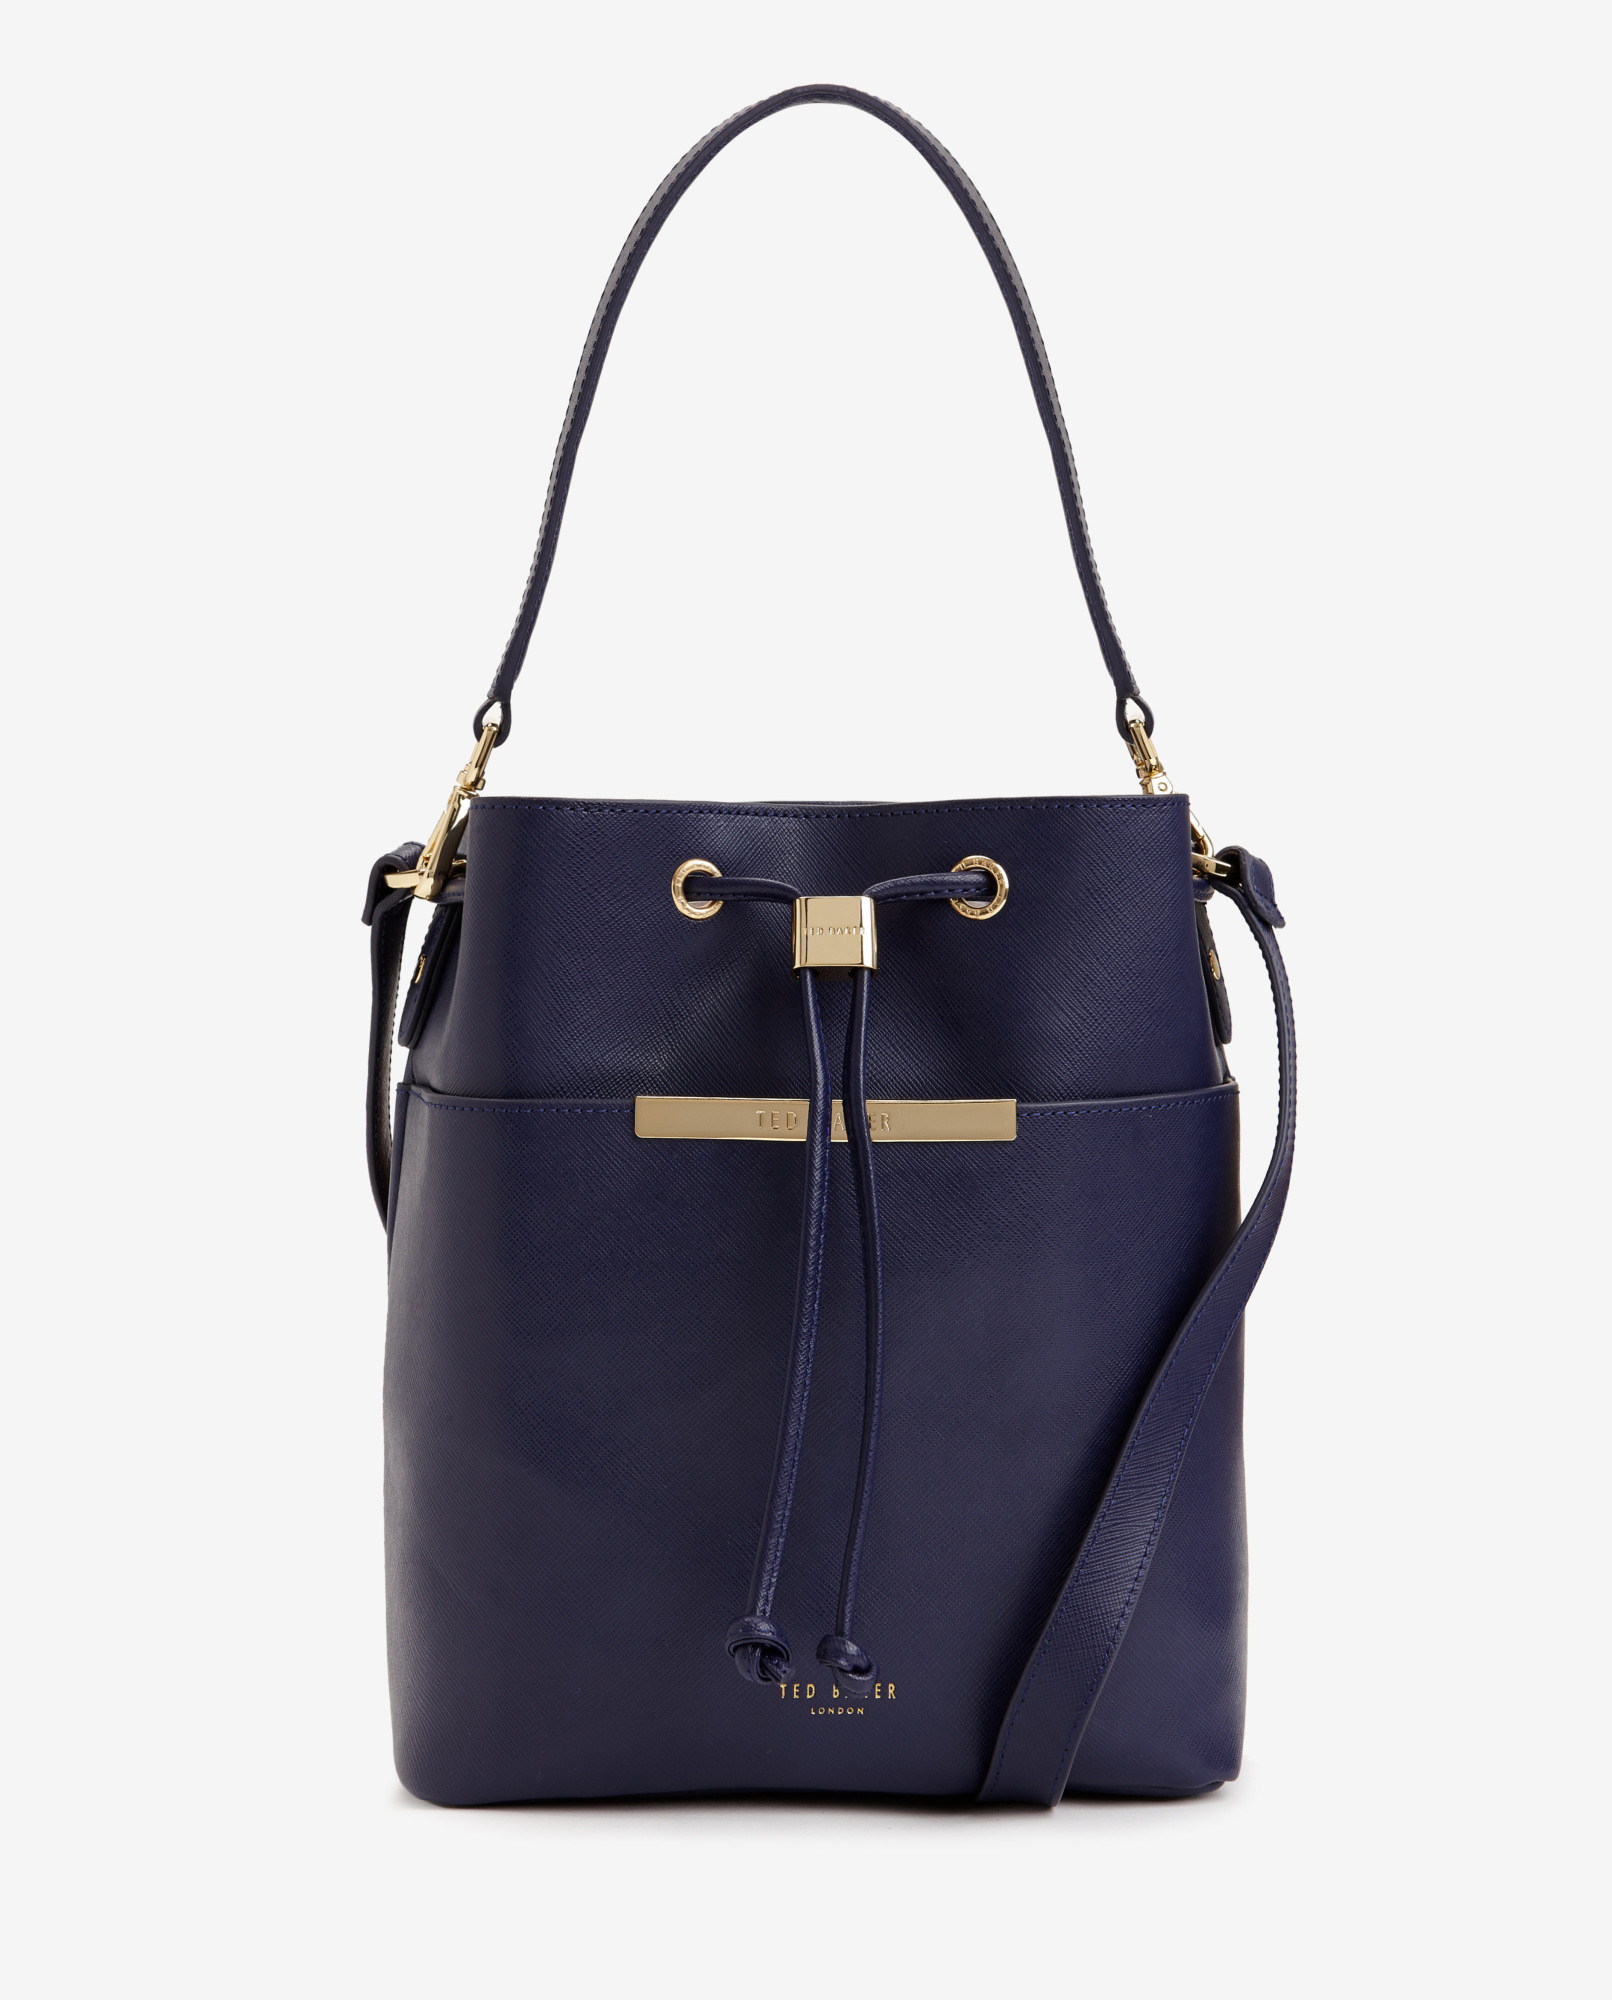 eb05888e101826 Ted Baker Crosshatch Leather Bucket Bag in Blue - Lyst